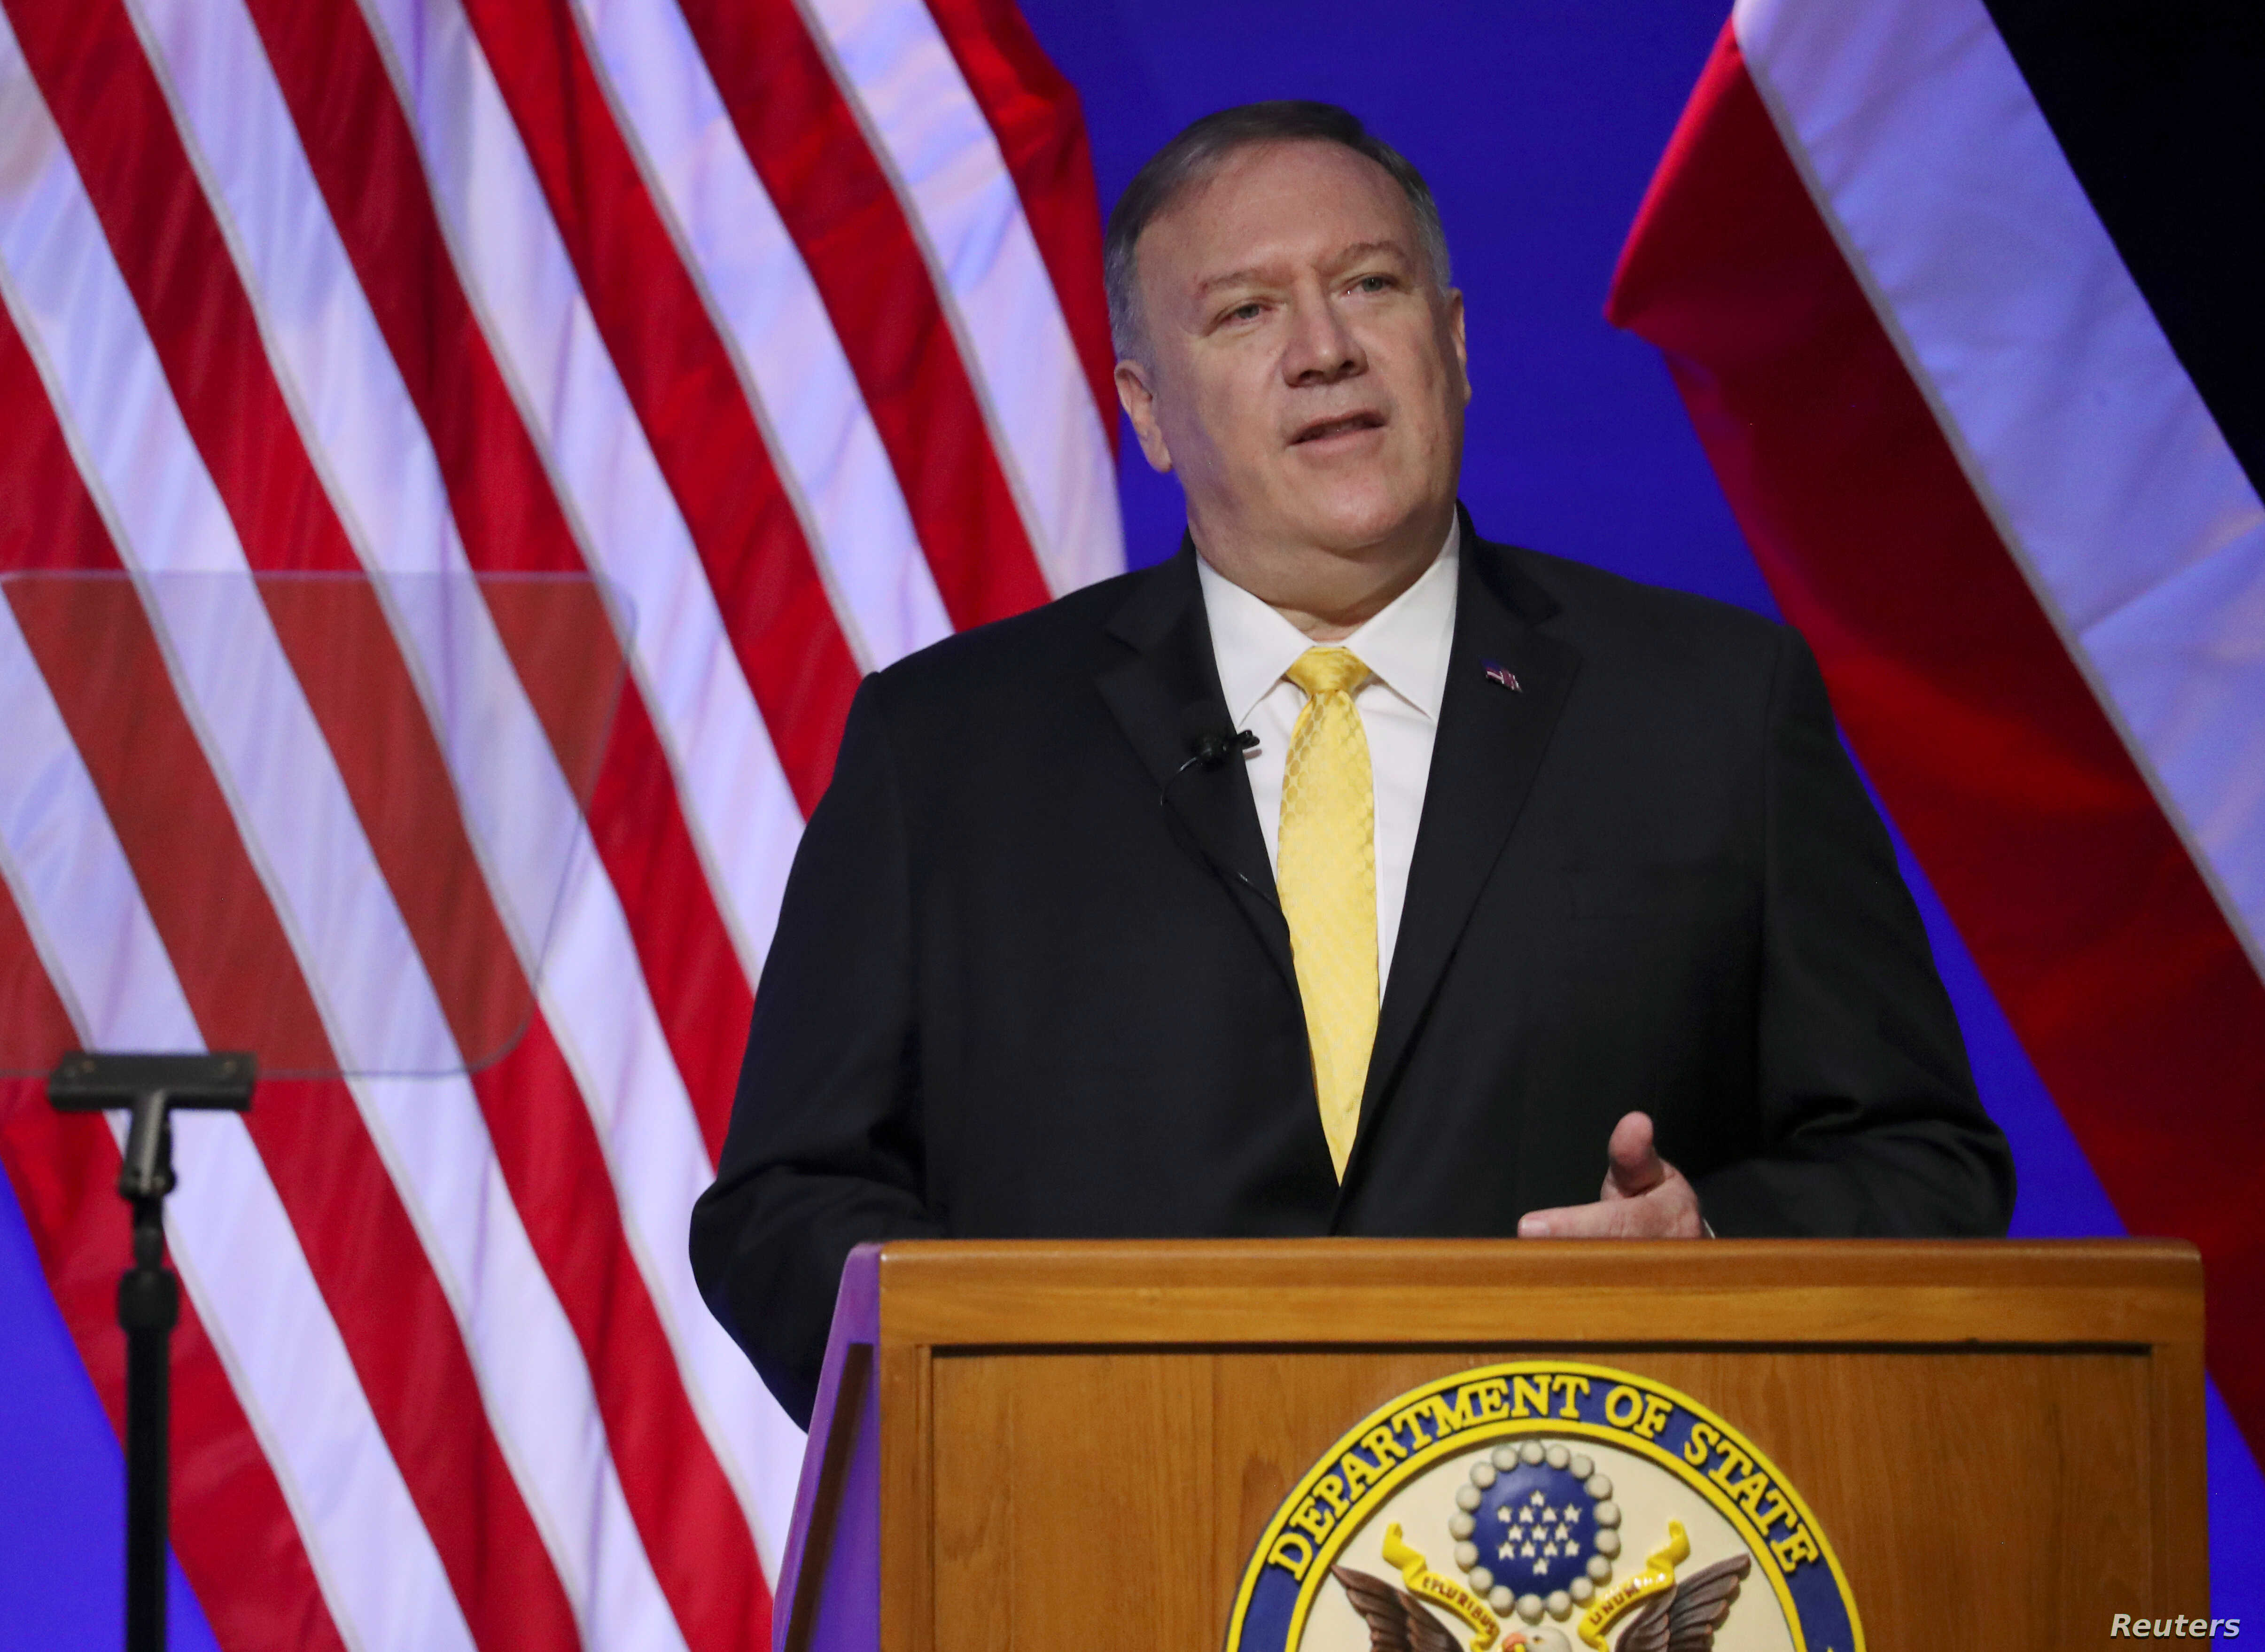 U.S. Secretary of State Mike Pompeo delivers a speech at Siam Society in Bangkok, Thailand, Aug. 2, 2019.